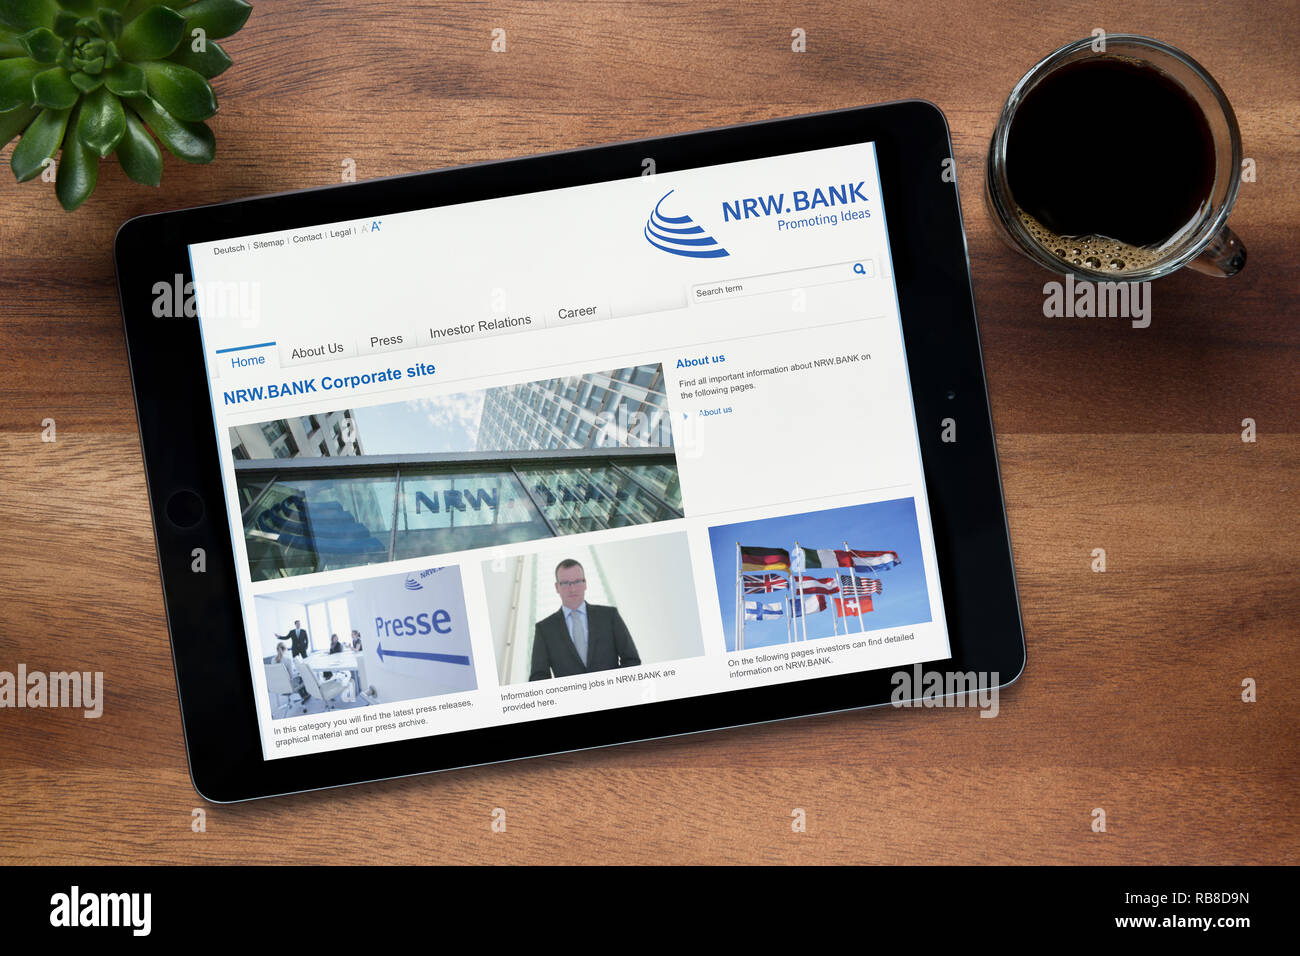 The website of NRW Bank is seen on an iPad tablet, on a wooden table along with an espresso coffee and a house plant (Editorial use only). - Stock Image